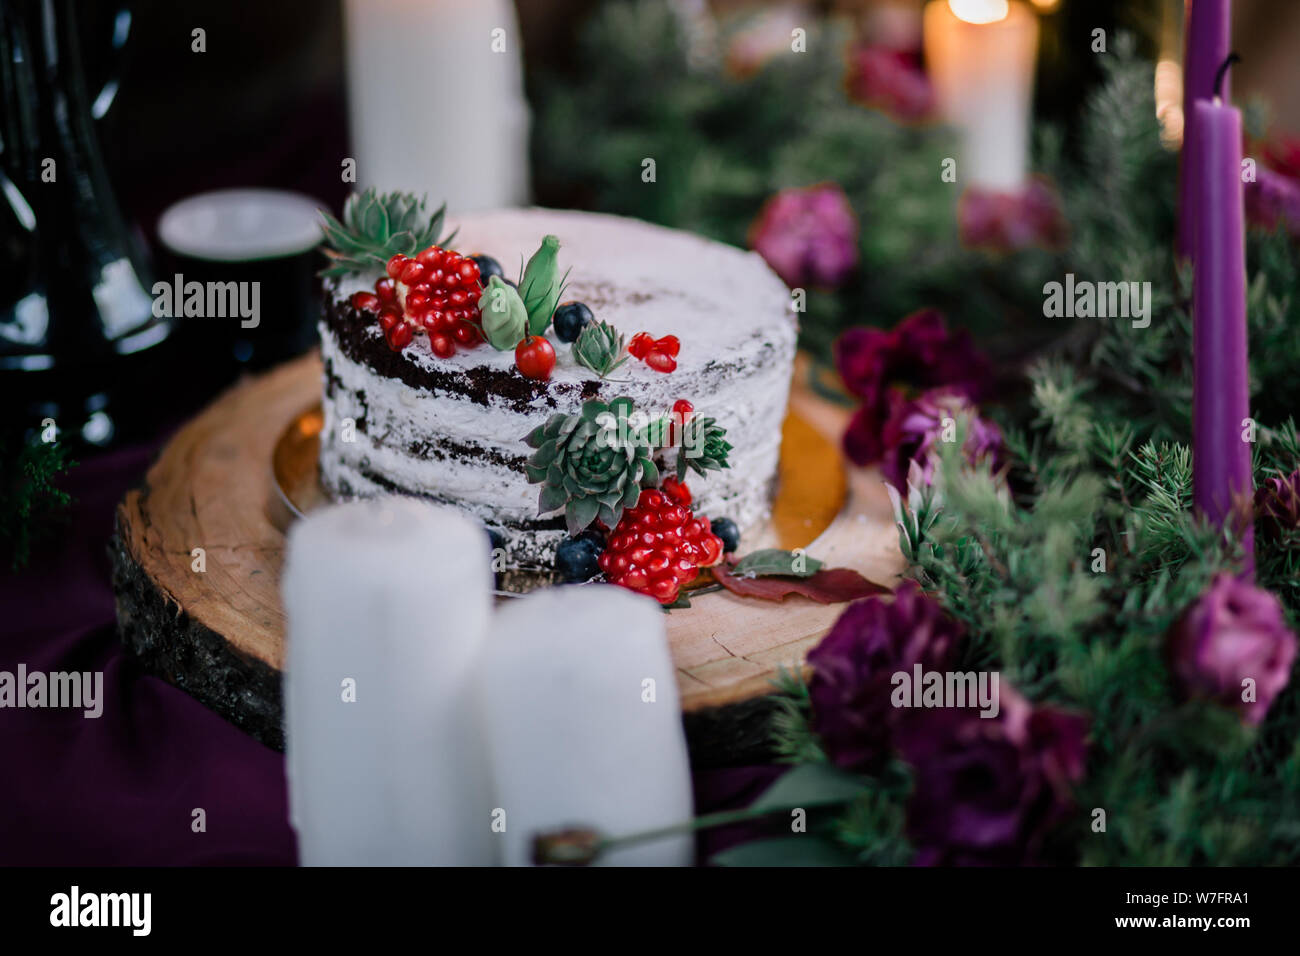 Delicate Wedding White Cake Decorated With Pomegranate And Succulent Surrounded By Flowers And Candles Stock Photo Alamy